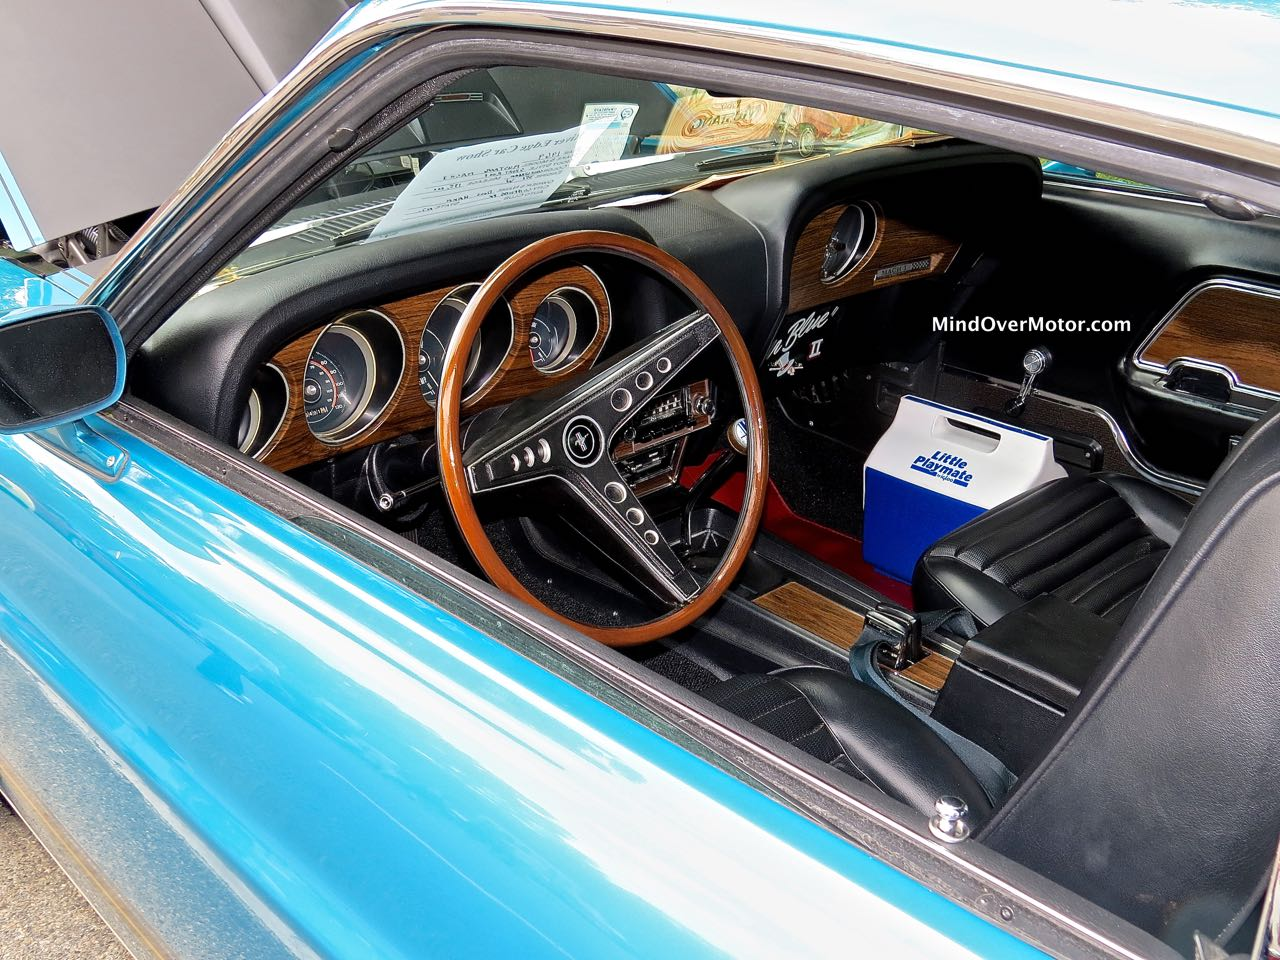 1969 Mustang Mach 1 Instrument Panel